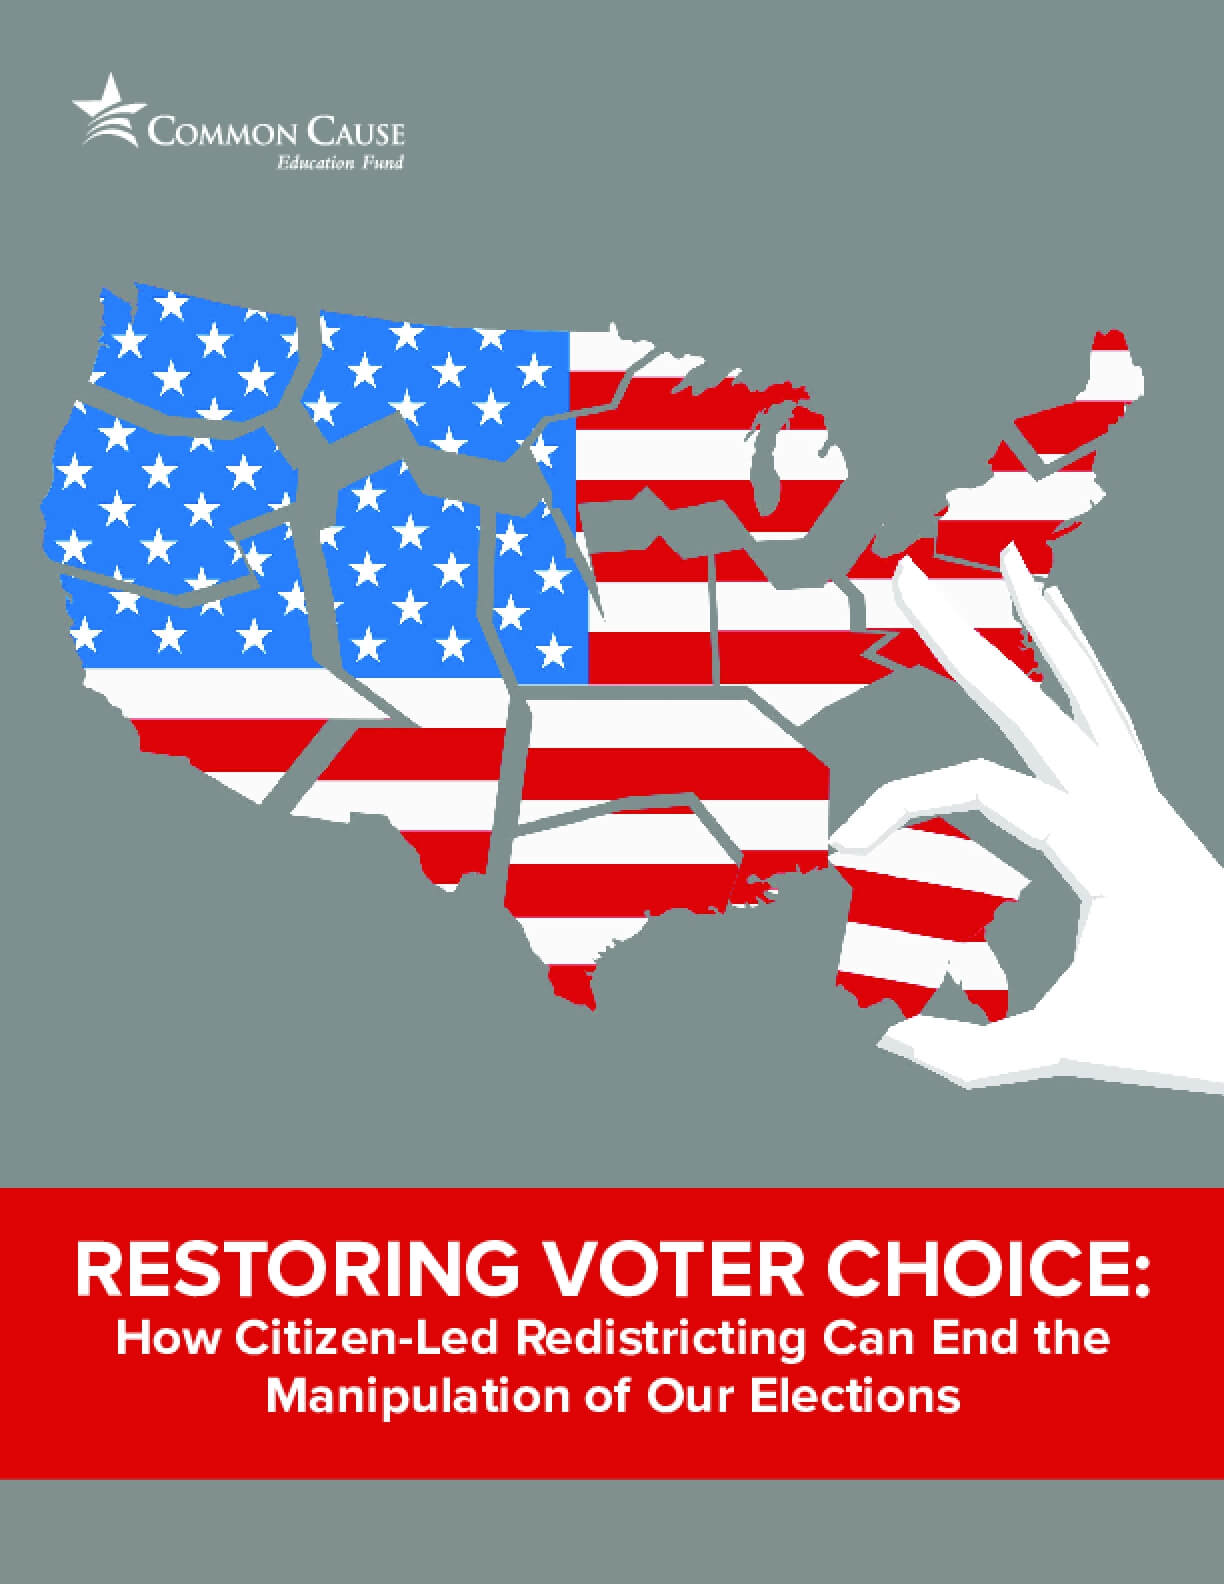 Restoring Voter Choice: How Citizen-Led Redistricting Can End the Manipulation of Our Elections